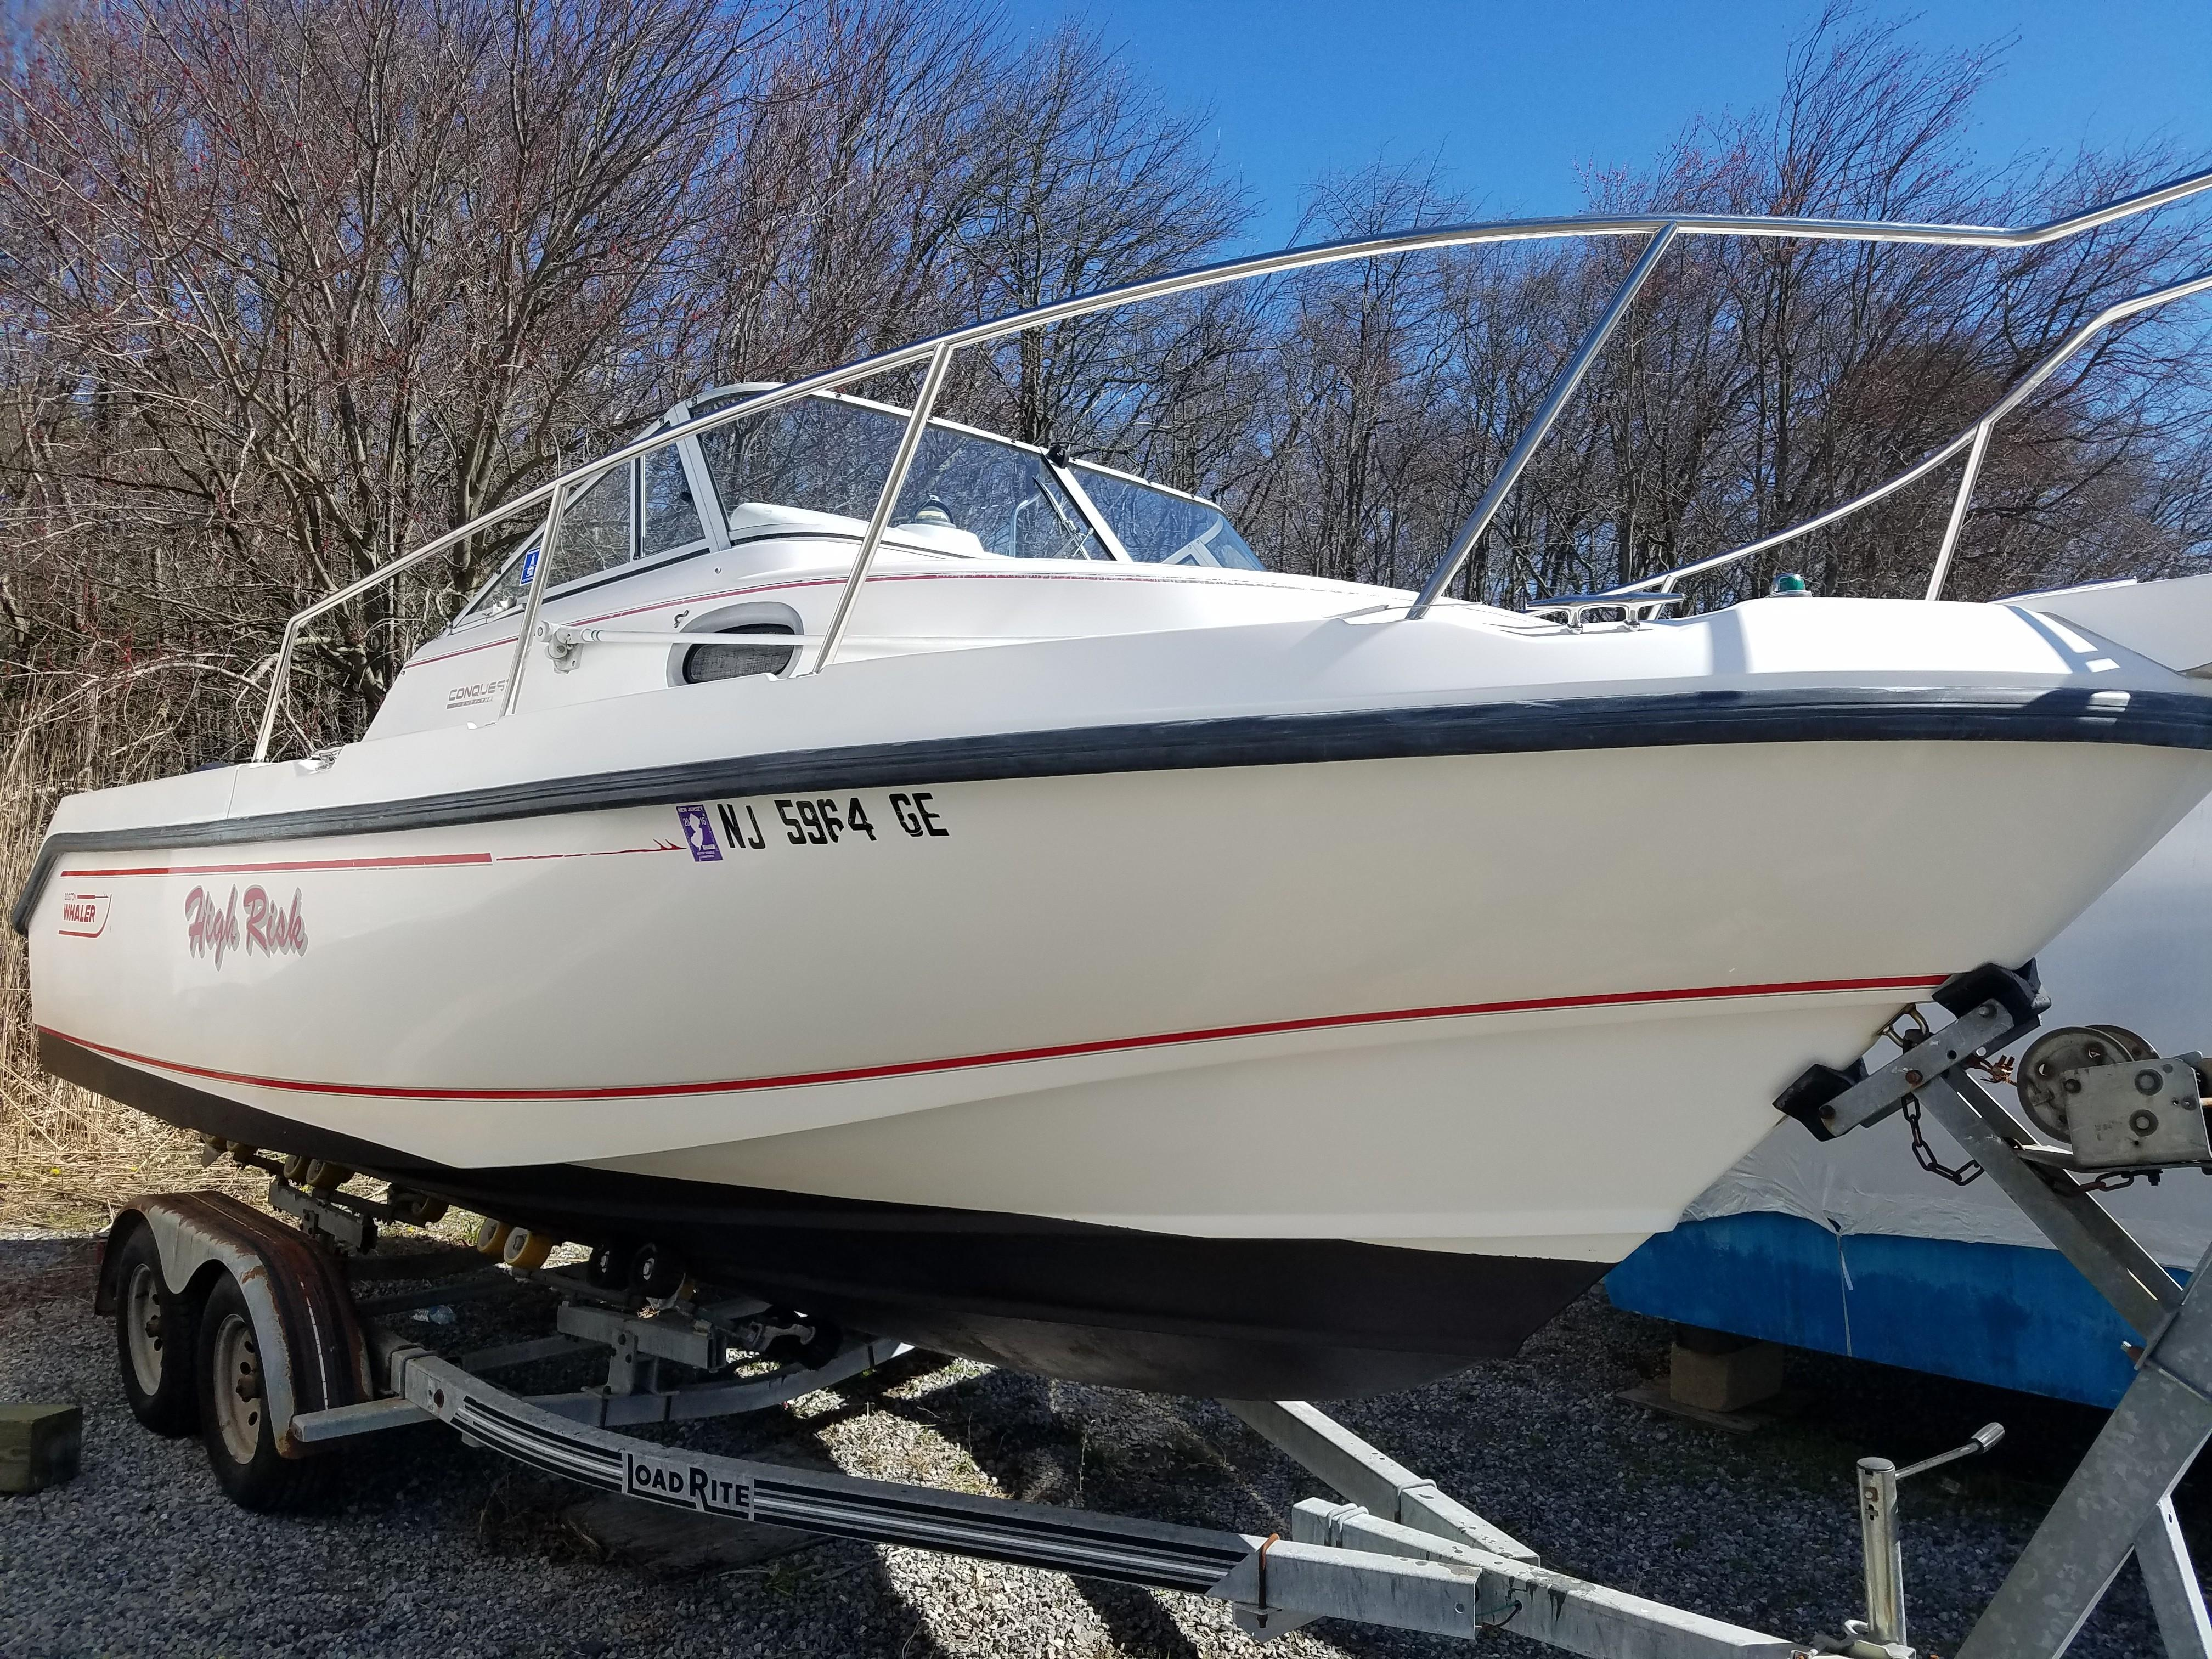 6172555_20170408100555525_1_XLARGE&w=4032&h=3024&t=1491675085000 1997 boston whaler 23 conquest power boat for sale www boston whaler wiring harness at webbmarketing.co